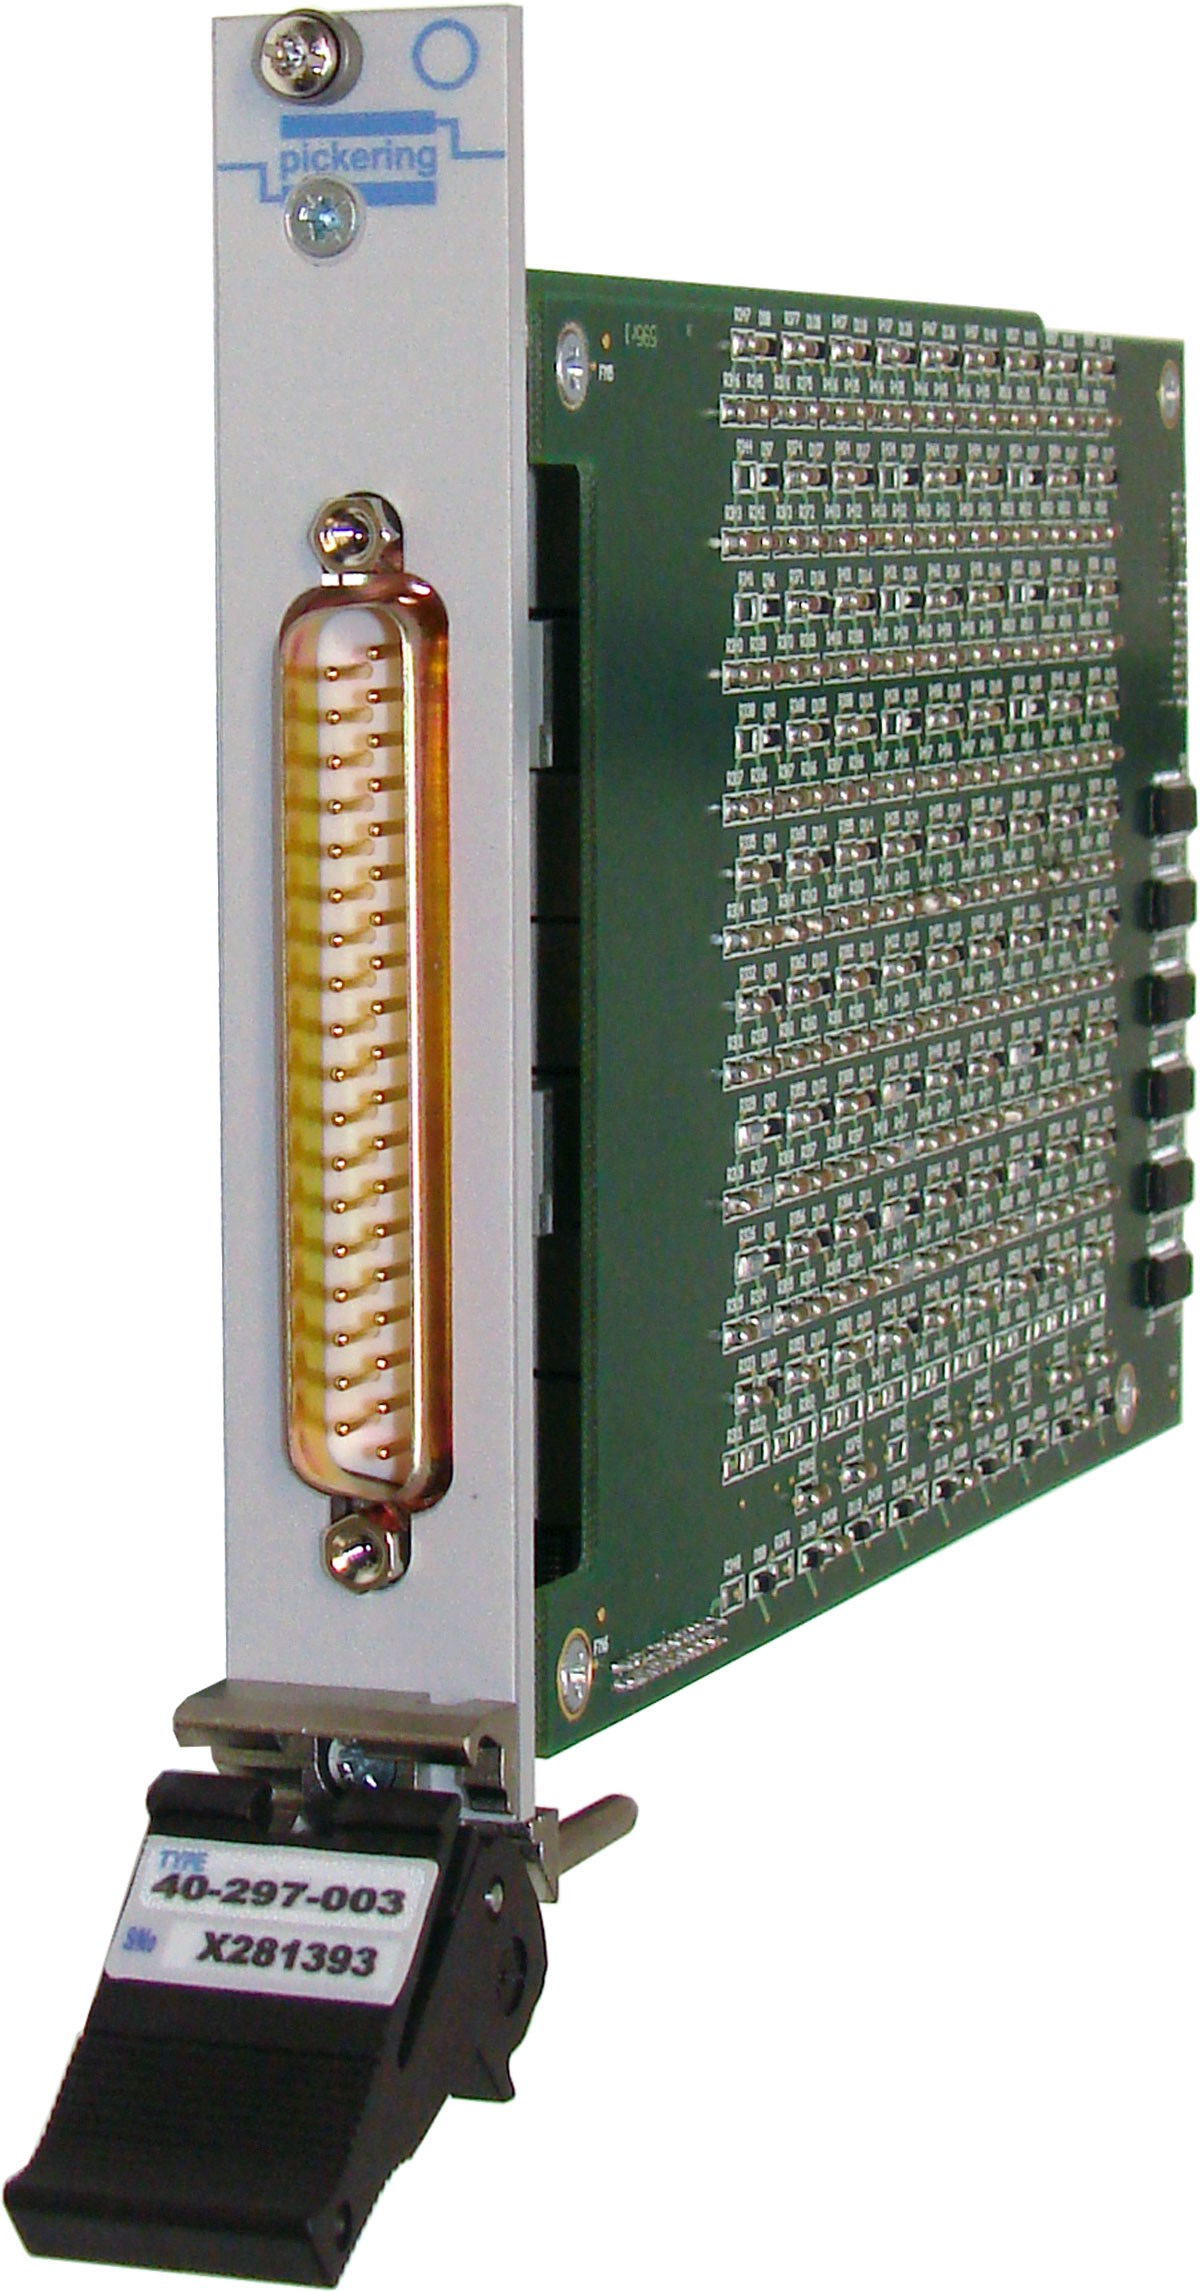 Pxi Precision Resistor Module 6 Channel 40 297 003 How To Organise Electronic Components Circuit Simulation